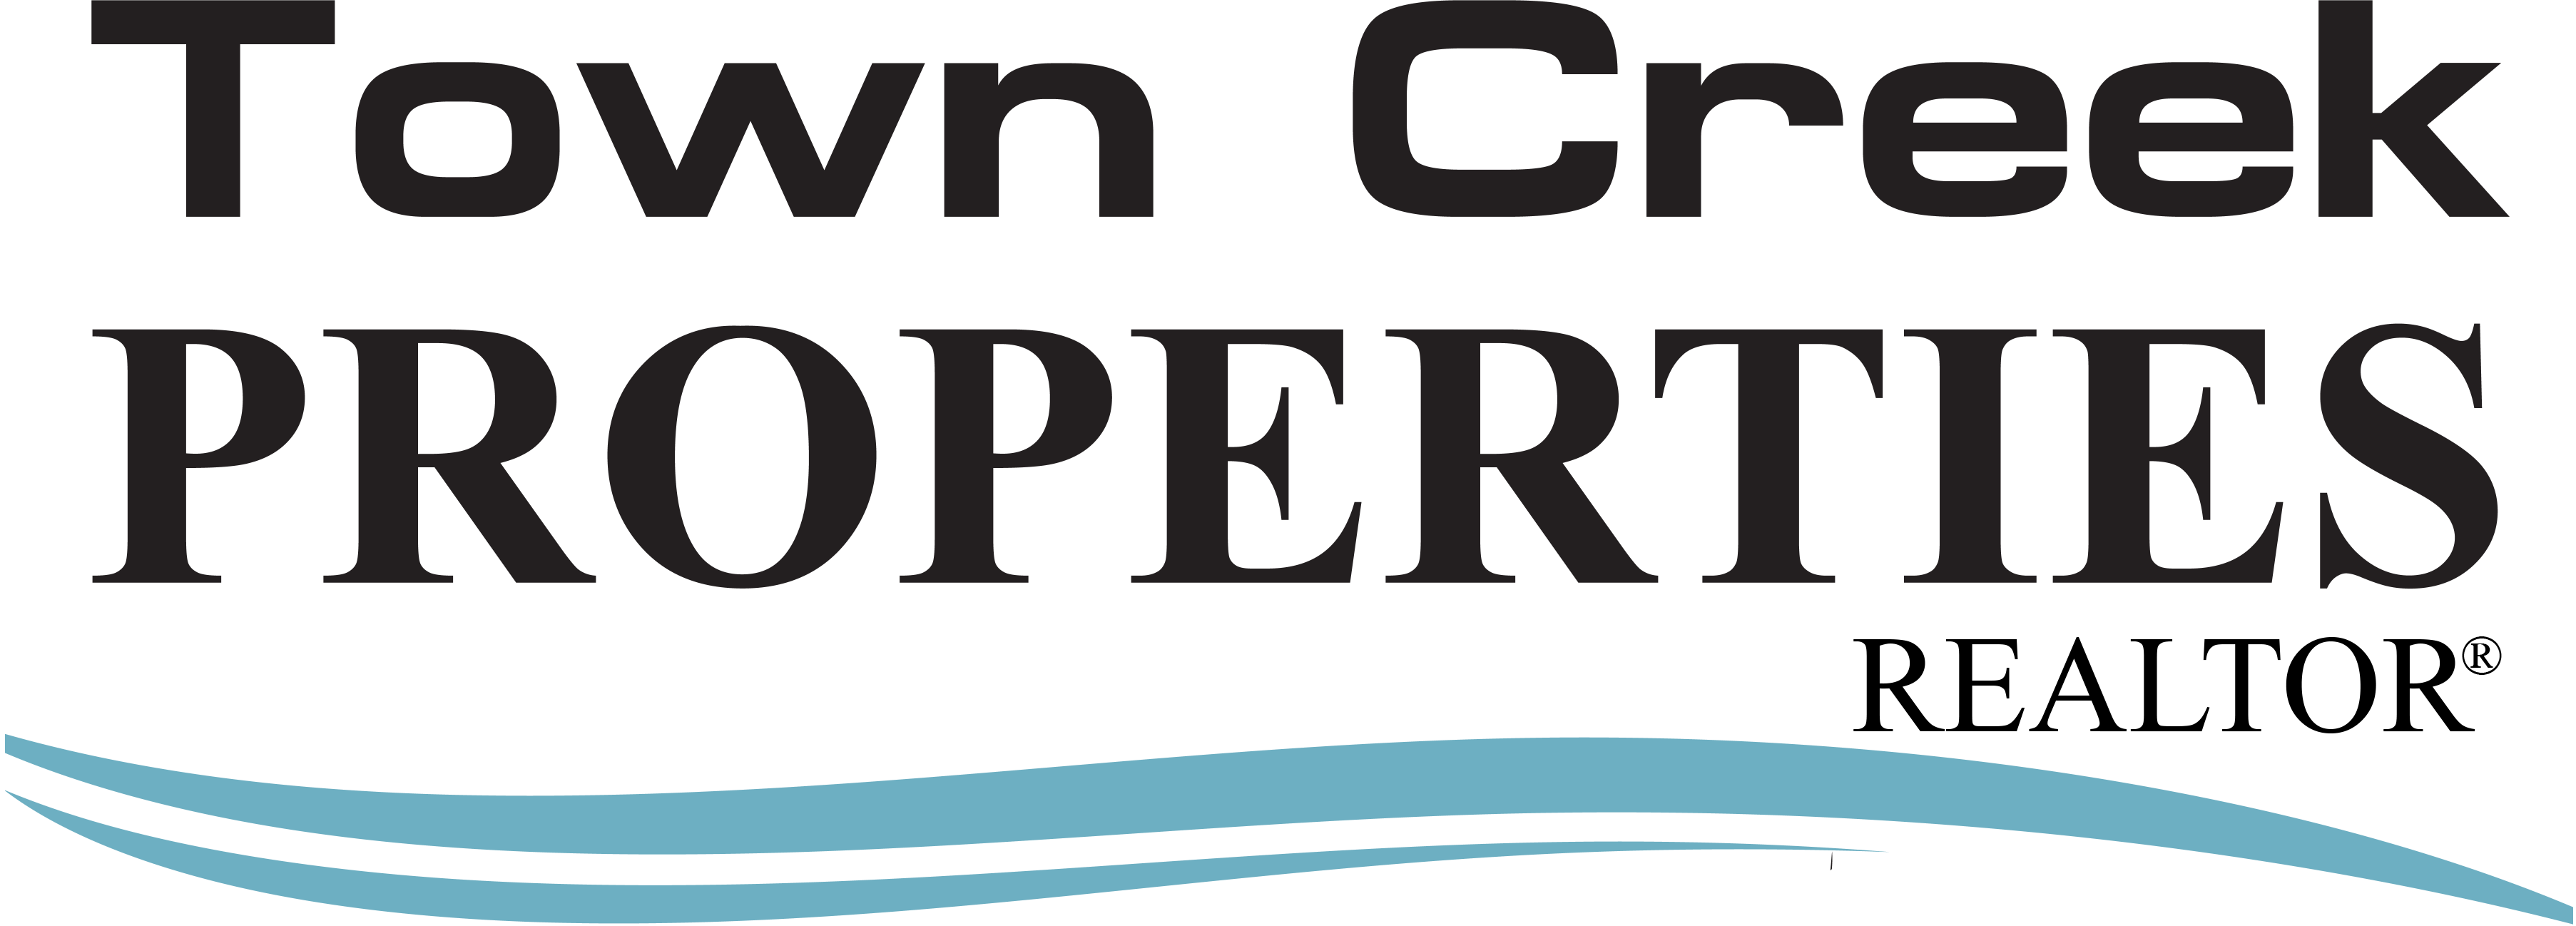 Town Creek Properties